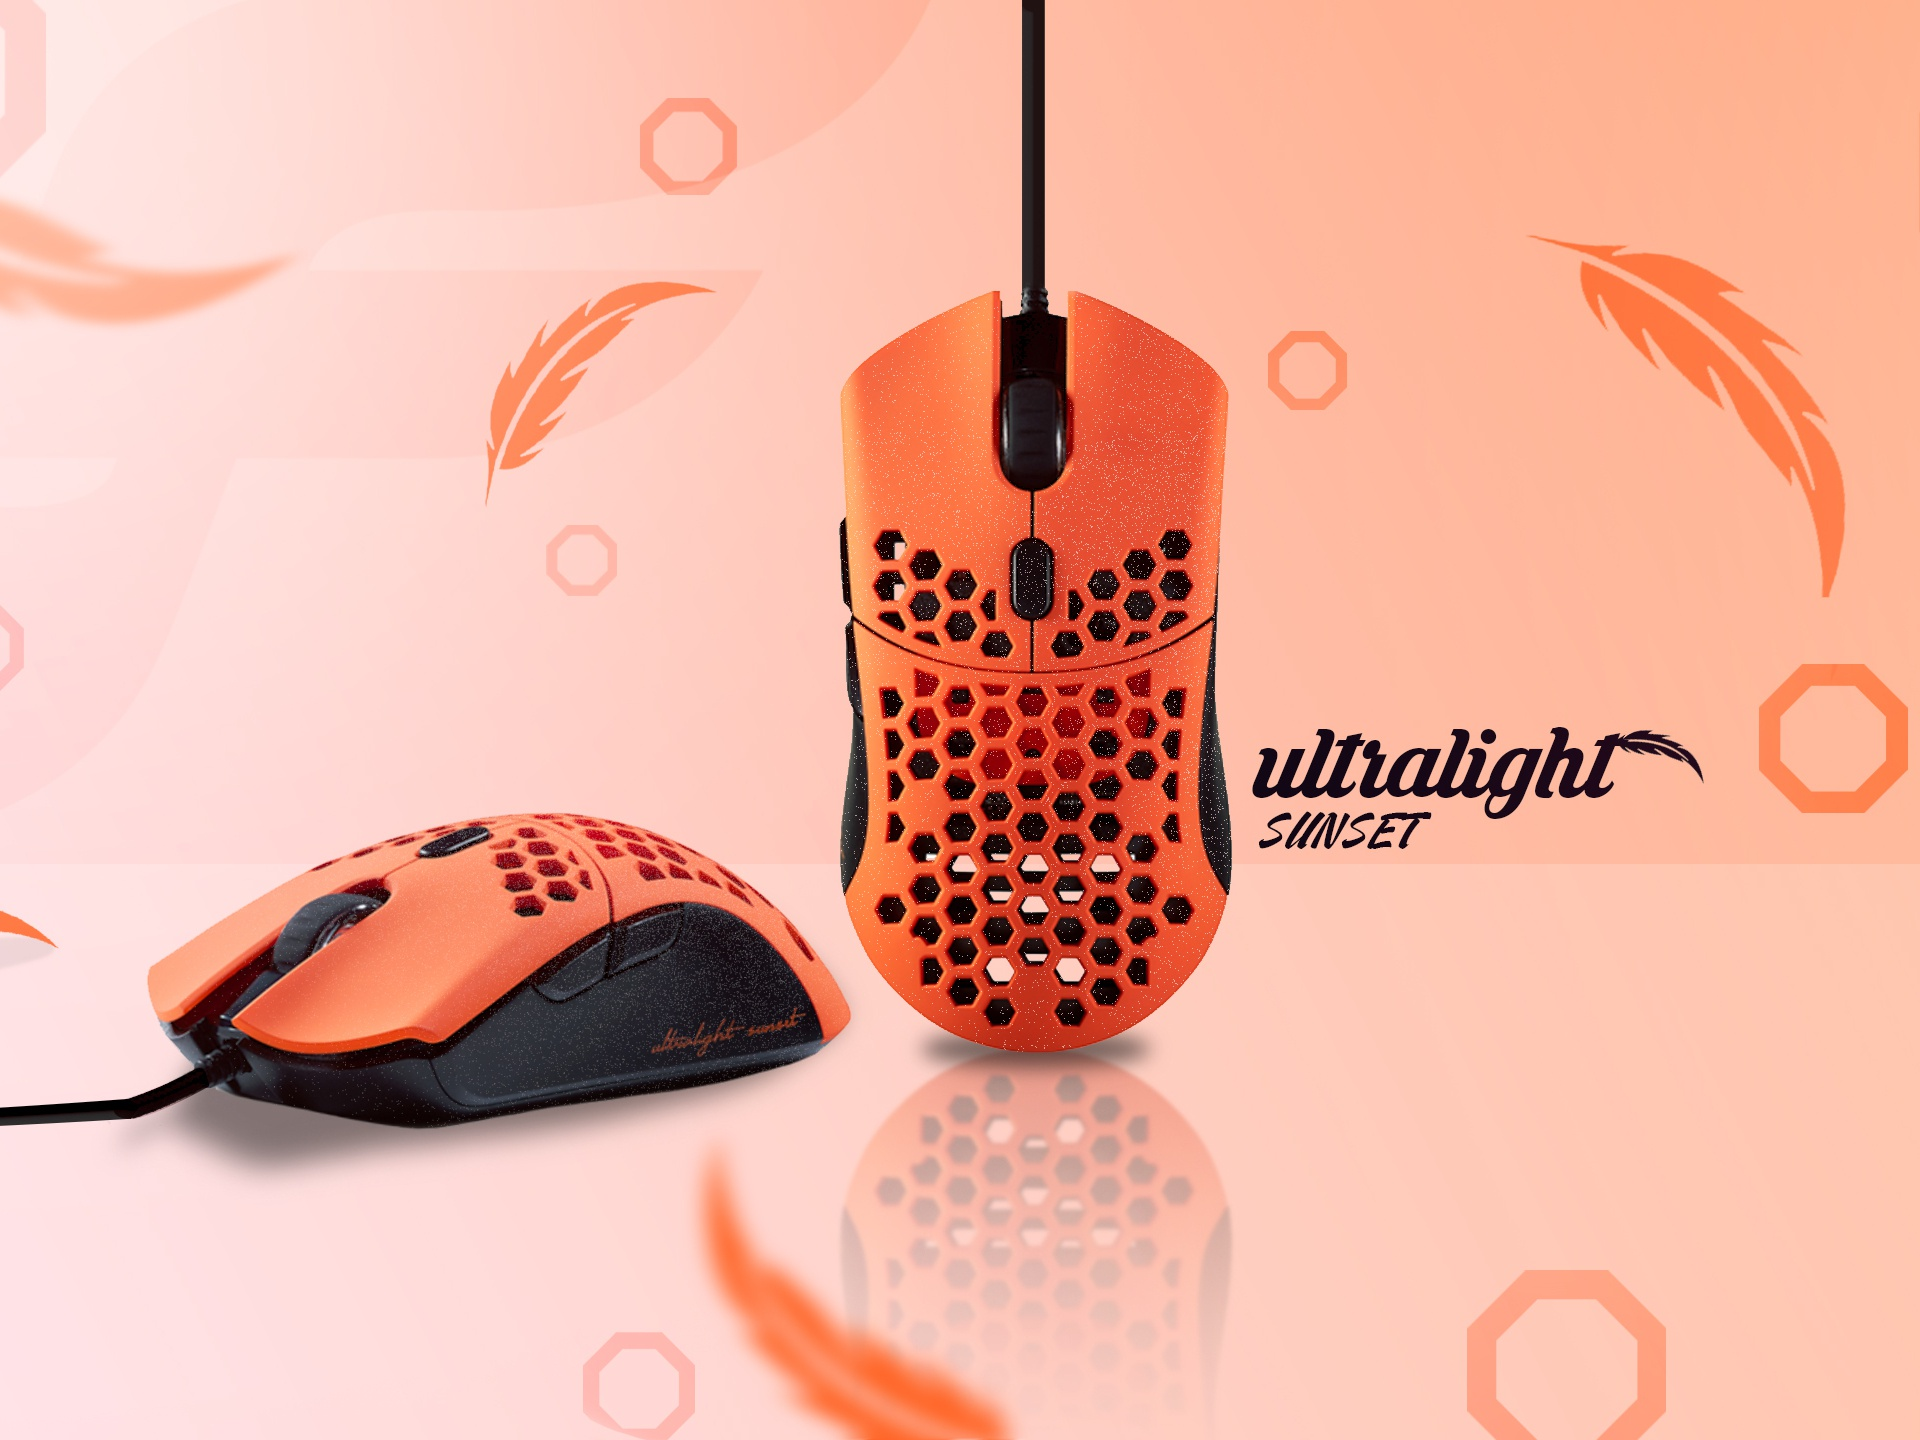 Finalmouse Landing page concept Design by Sam G on Dribbble